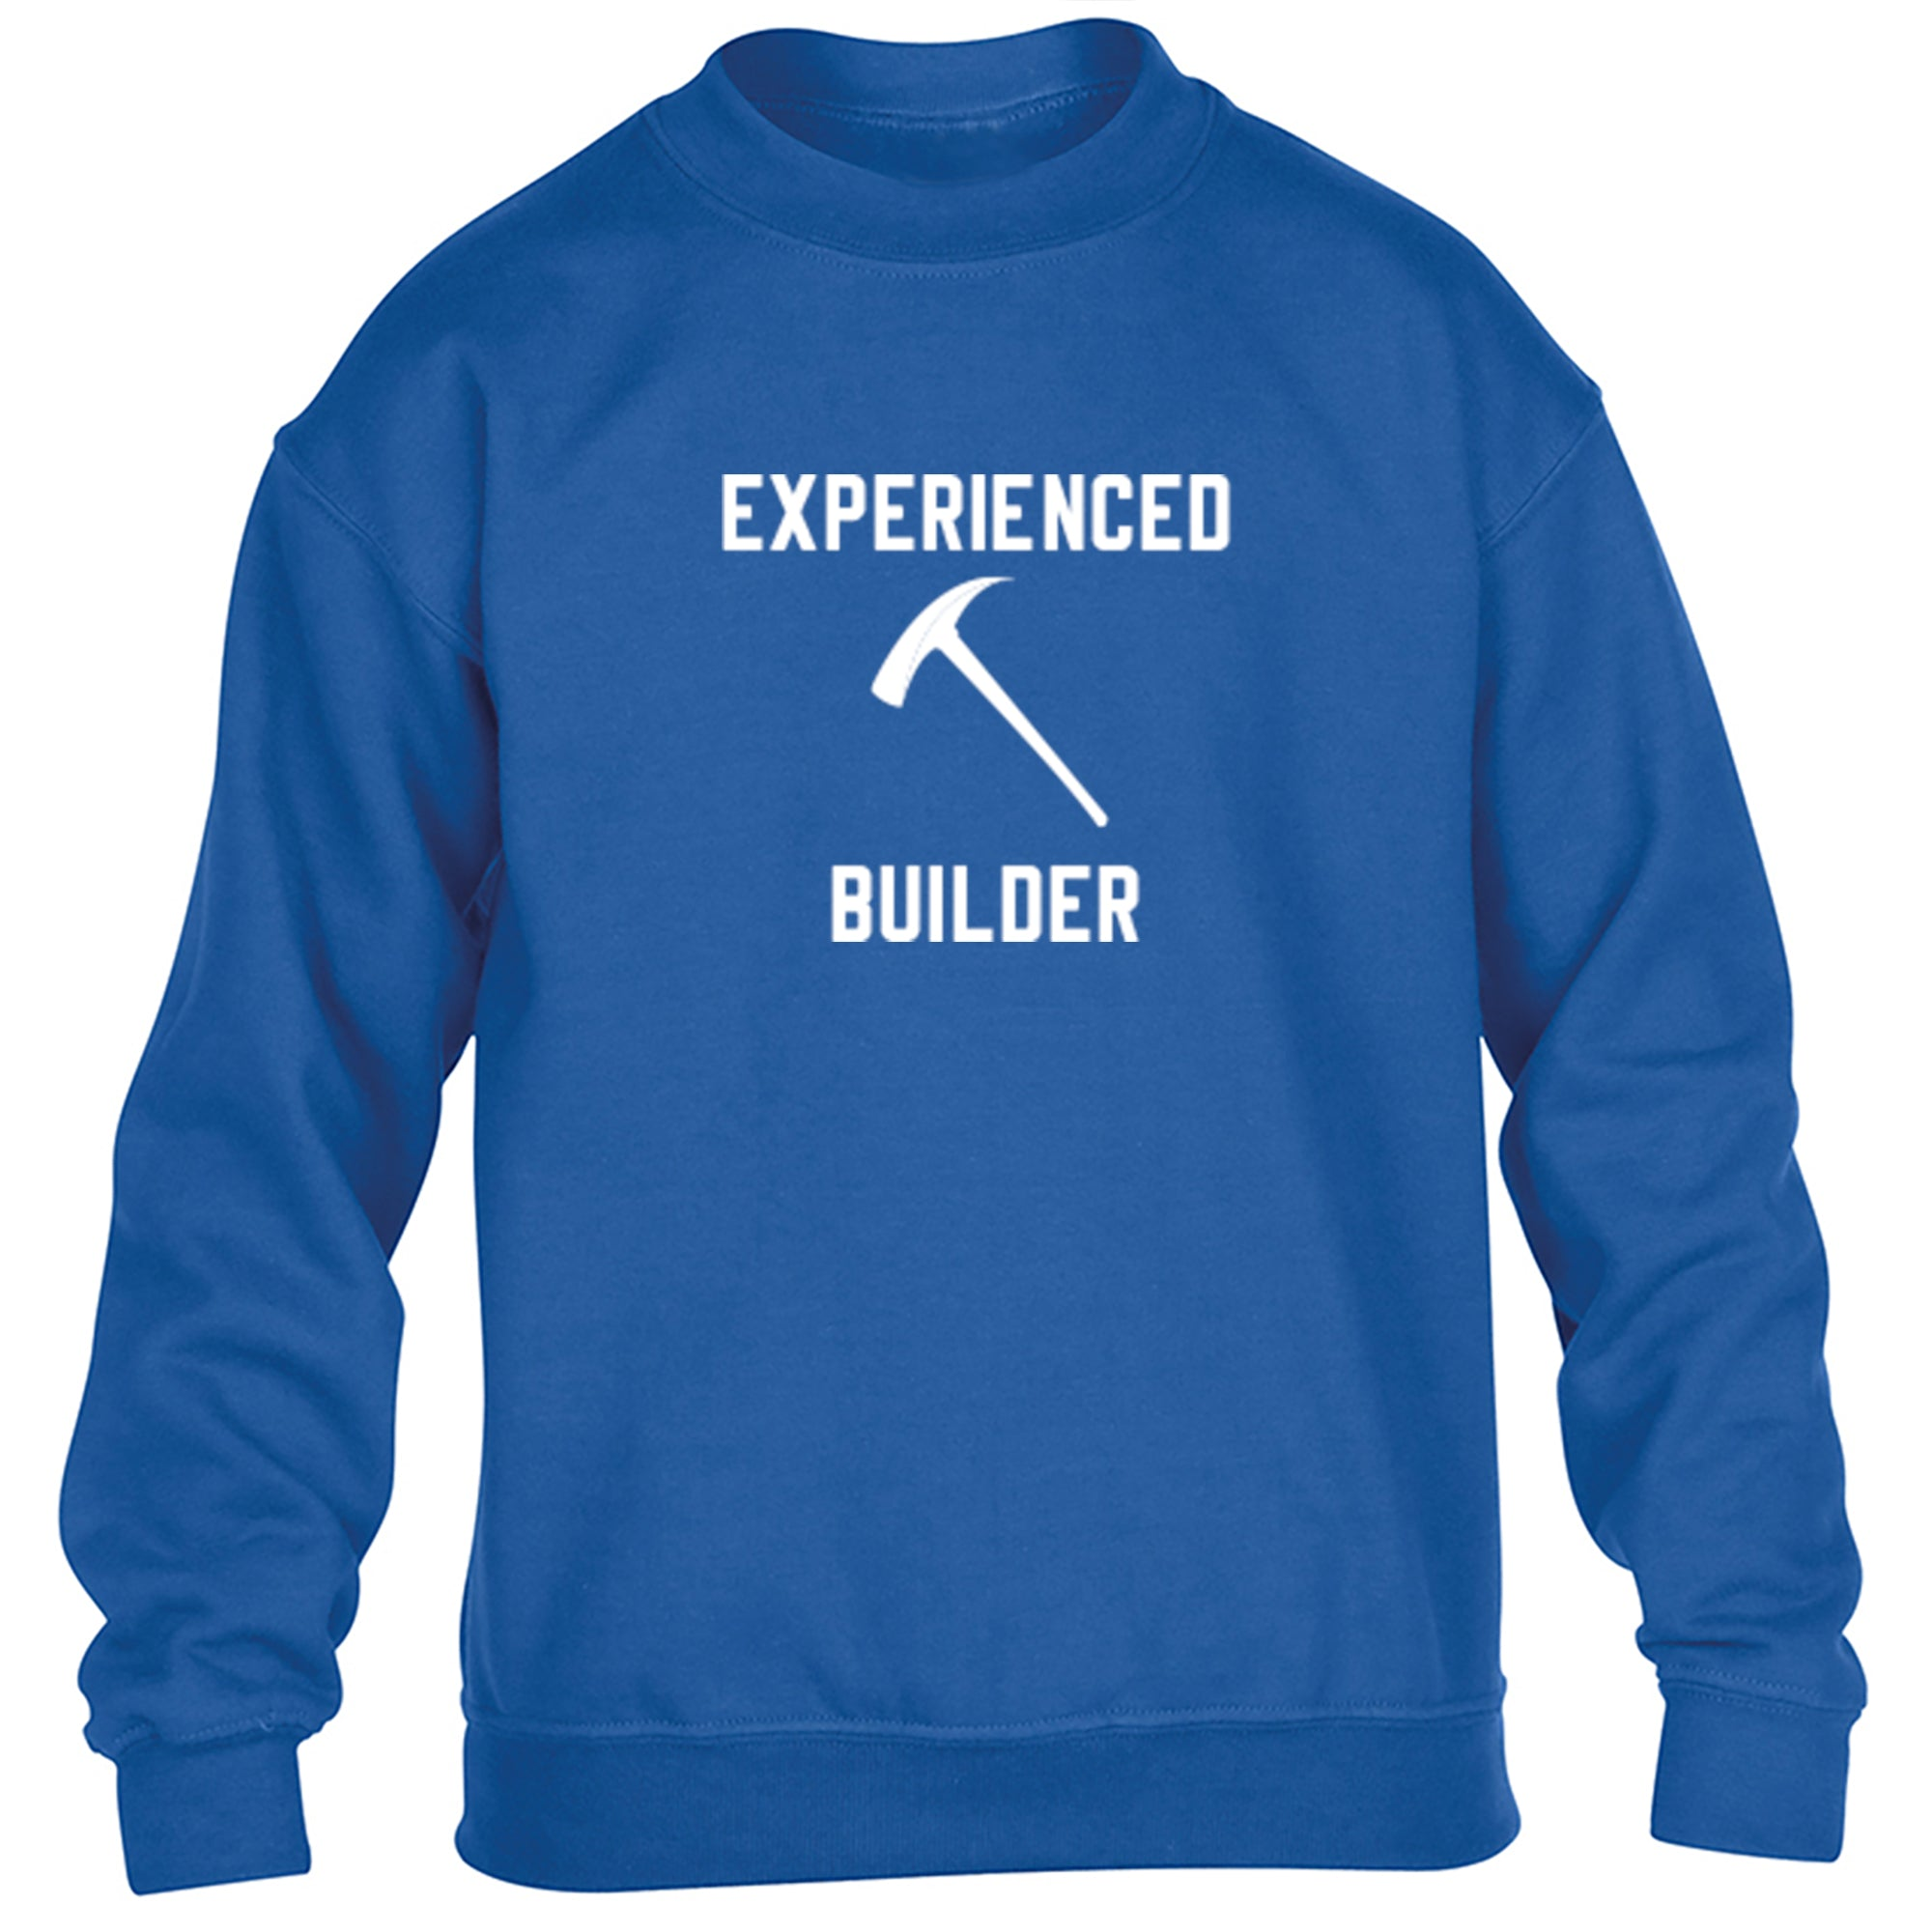 Experienced Builder Childrens Ages 3/4-12/14 Unisex Jumper S0387 - Illustrated Identity Ltd.